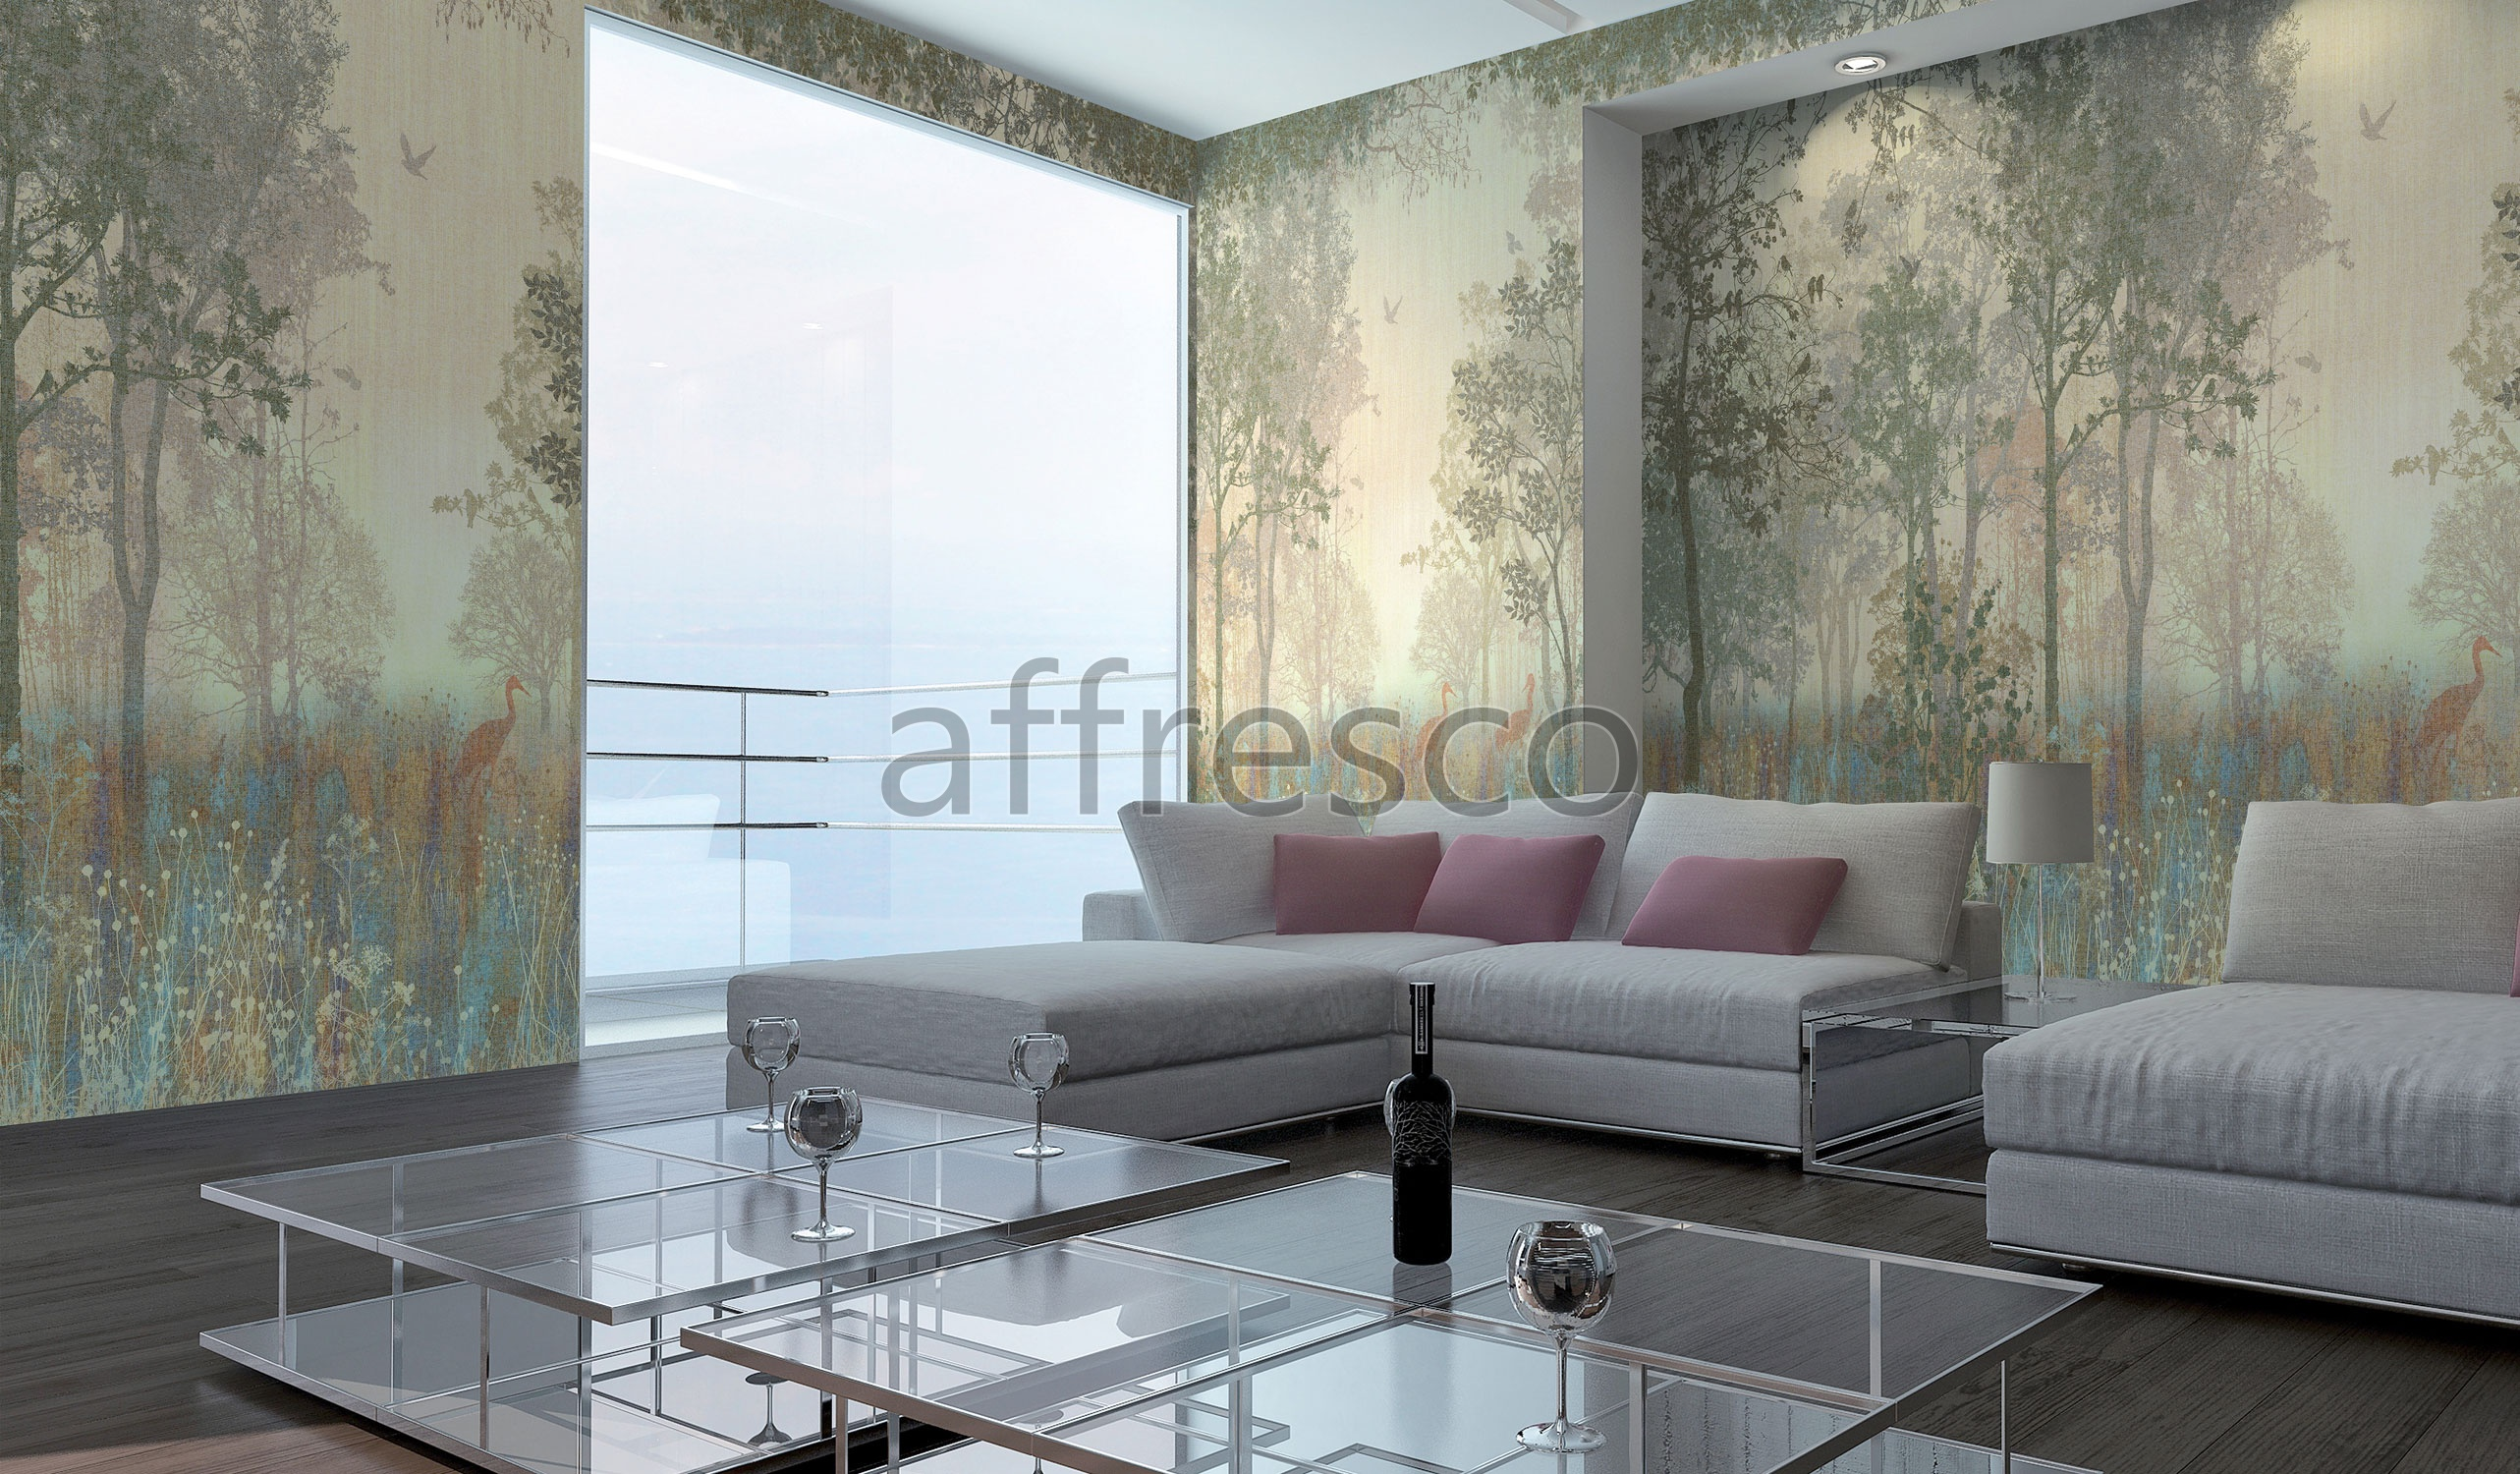 Handmade wallpaper, Handmade wallpaper Handmade wallpaper | Serenity